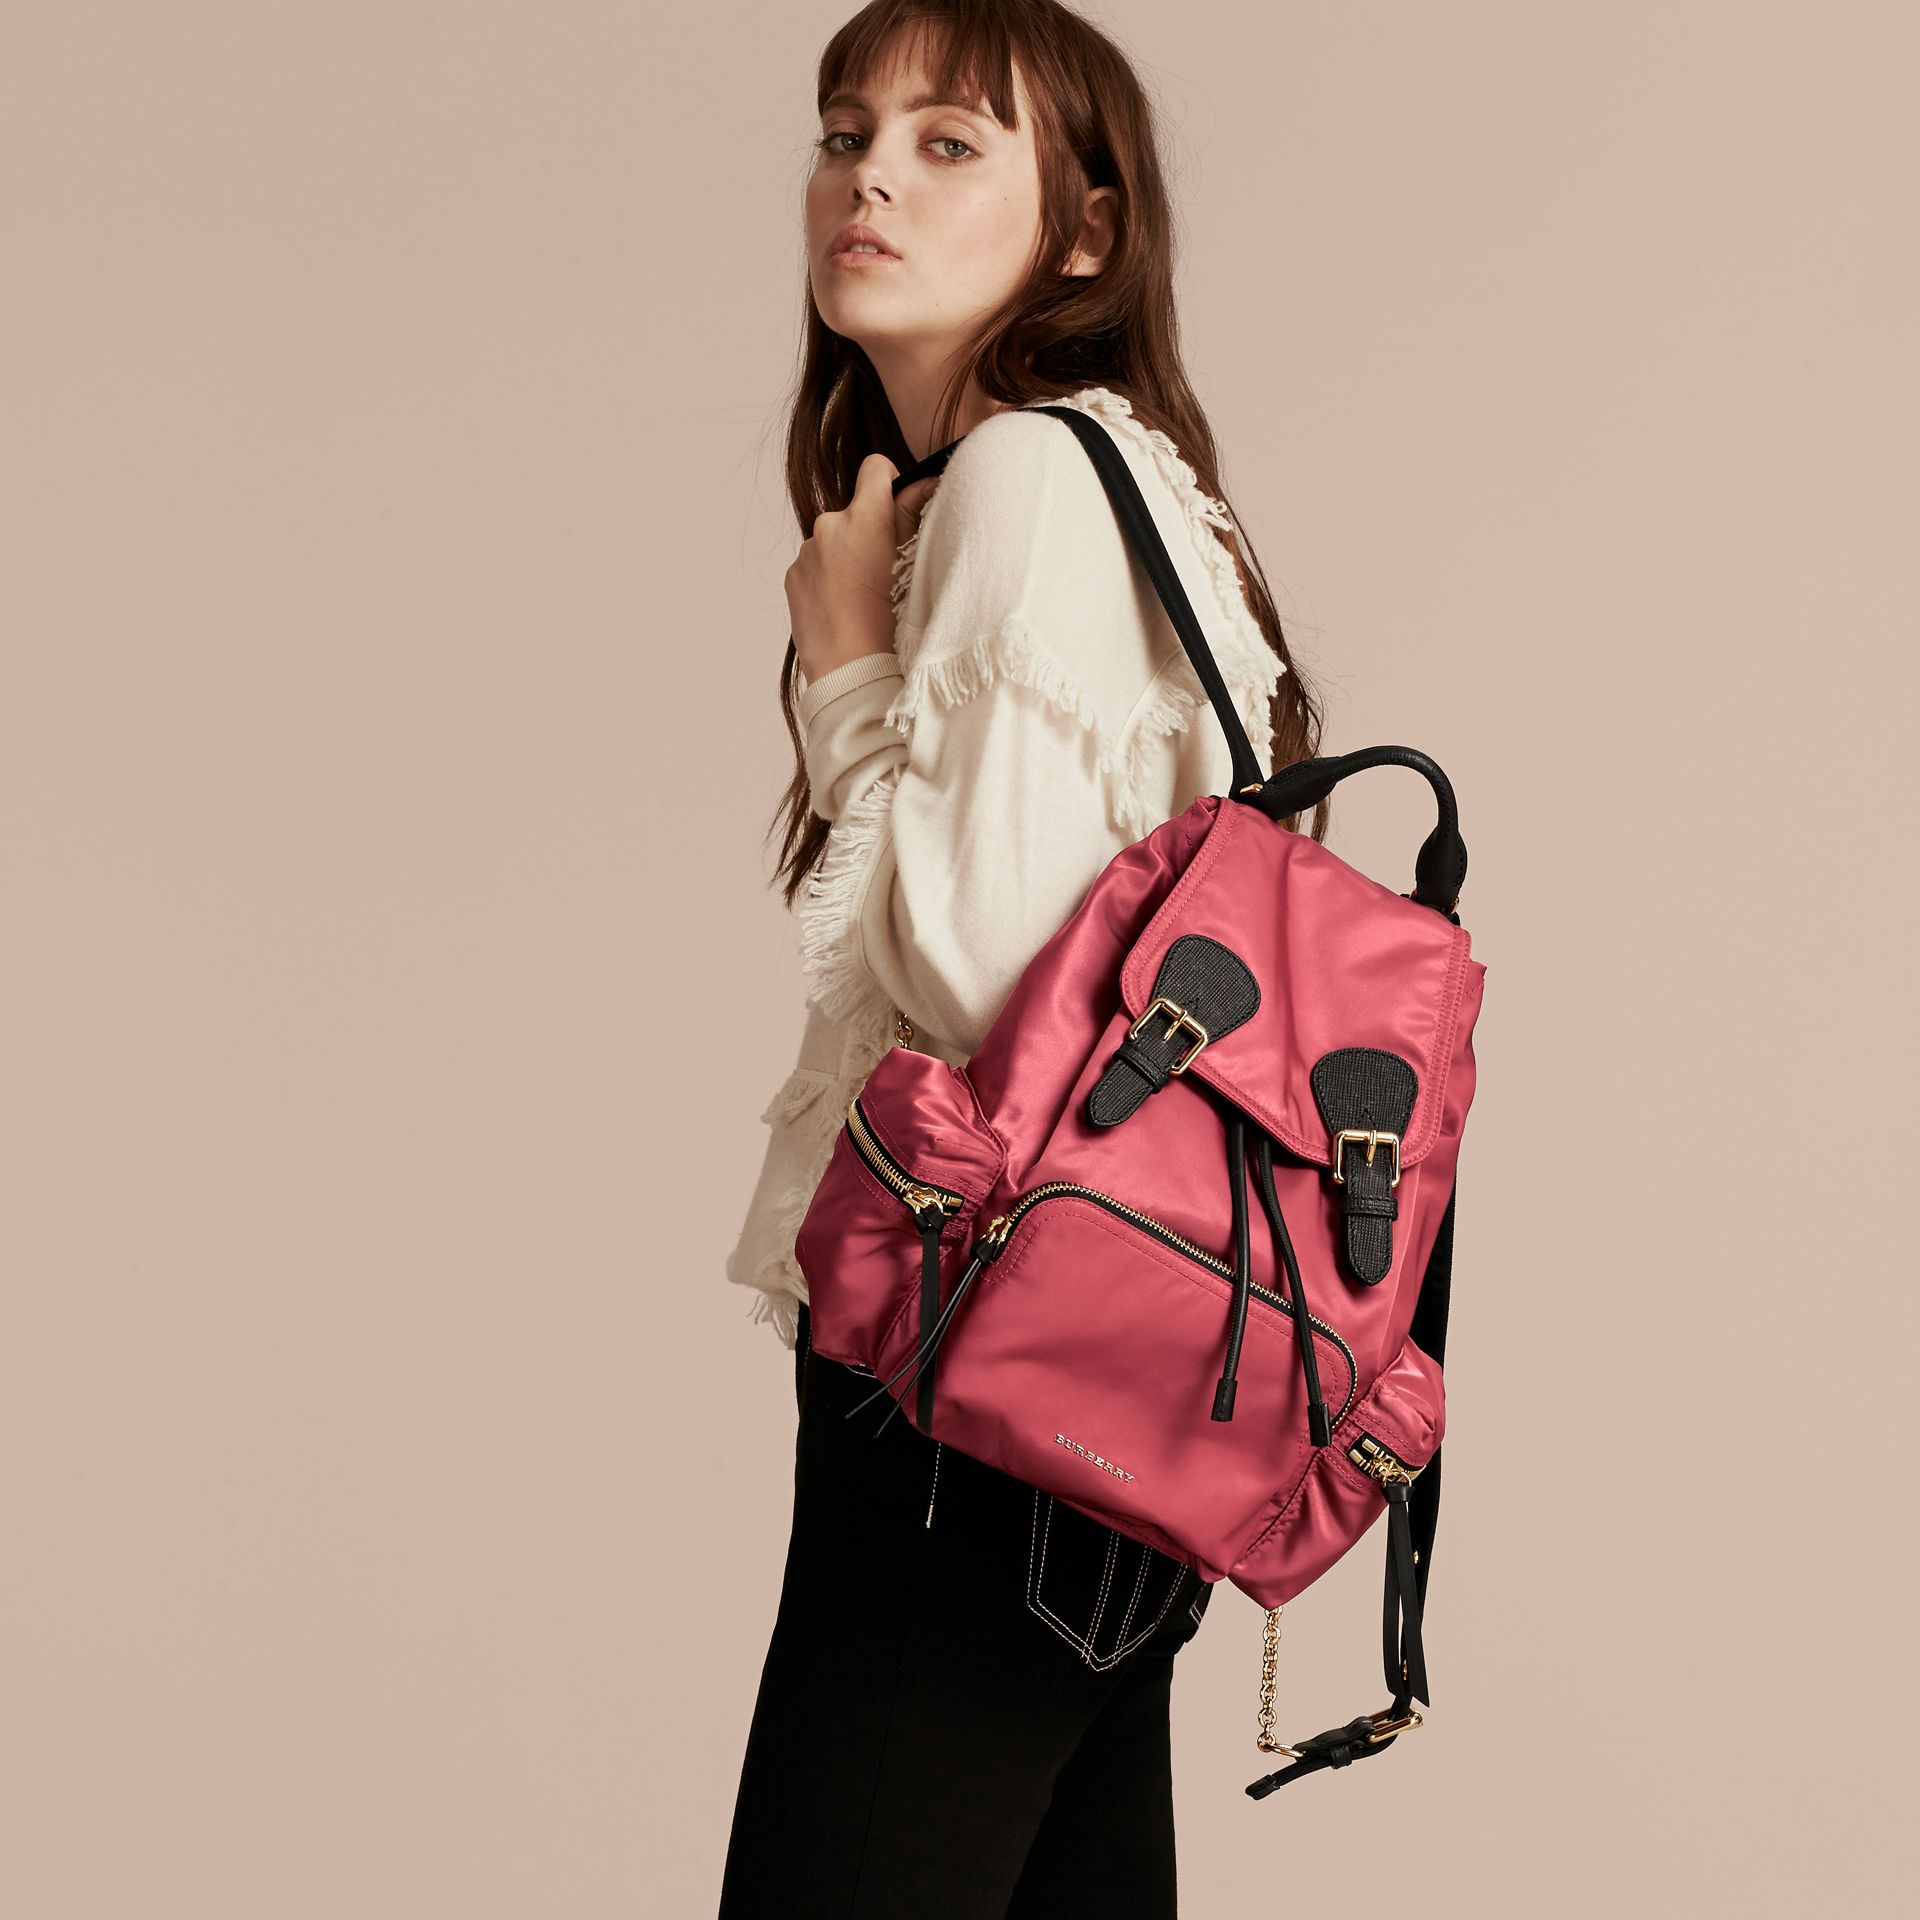 Sac The Rucksack moyen en nylon technique et cuir (Rose Prune) - Femme | Burberry Canada - photo de la galerie 2